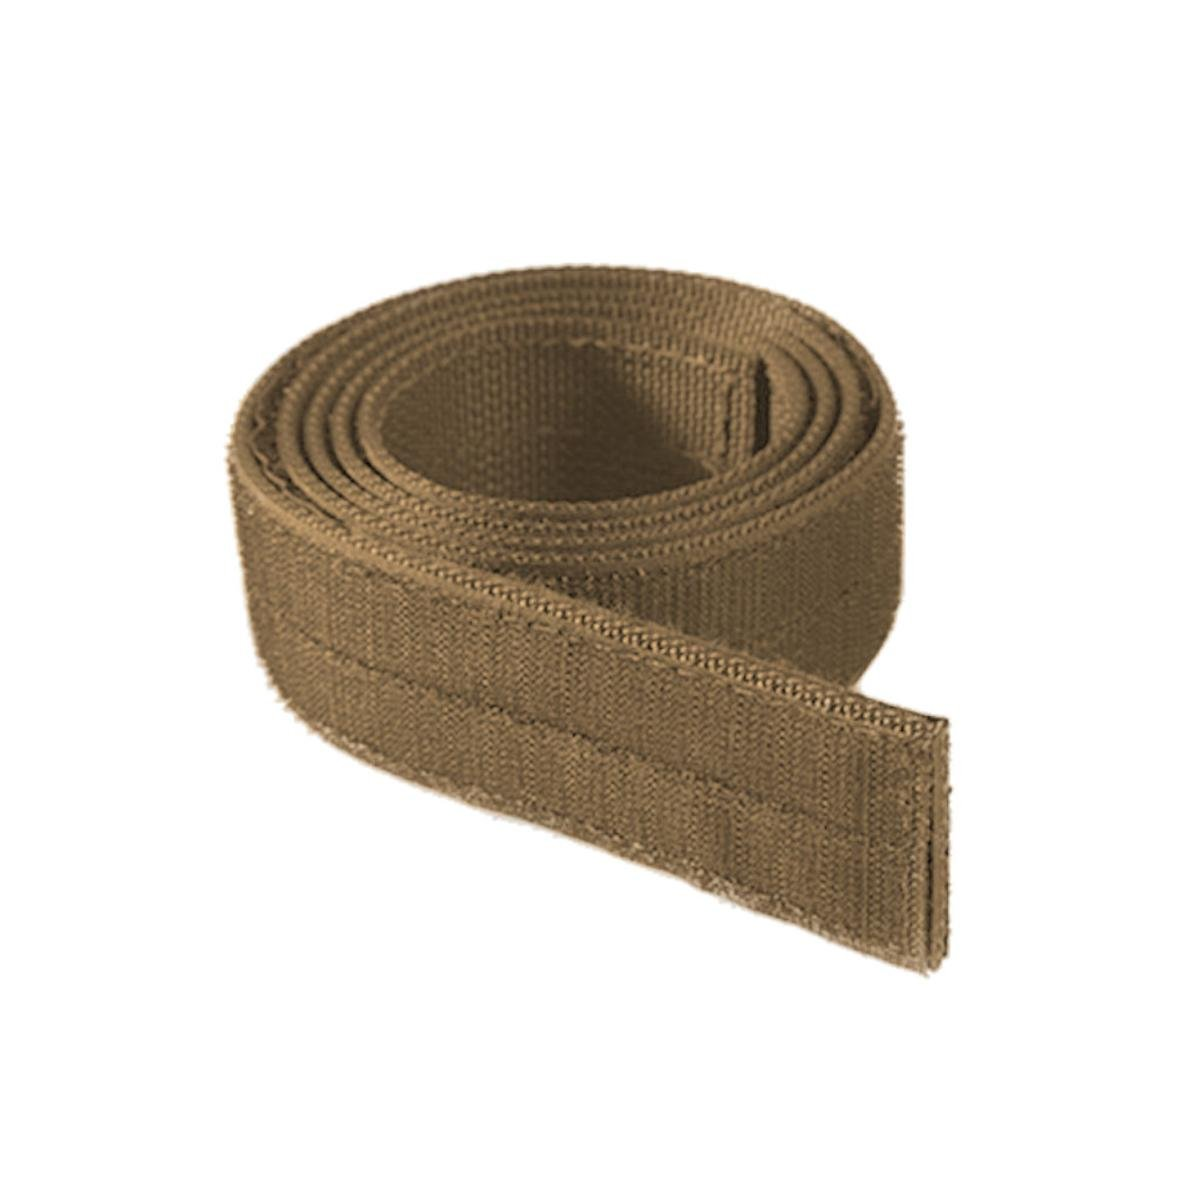 High Speed Gear Velcro Inner Duty Belt, USA Made, Coyote Brown, Large 36-40